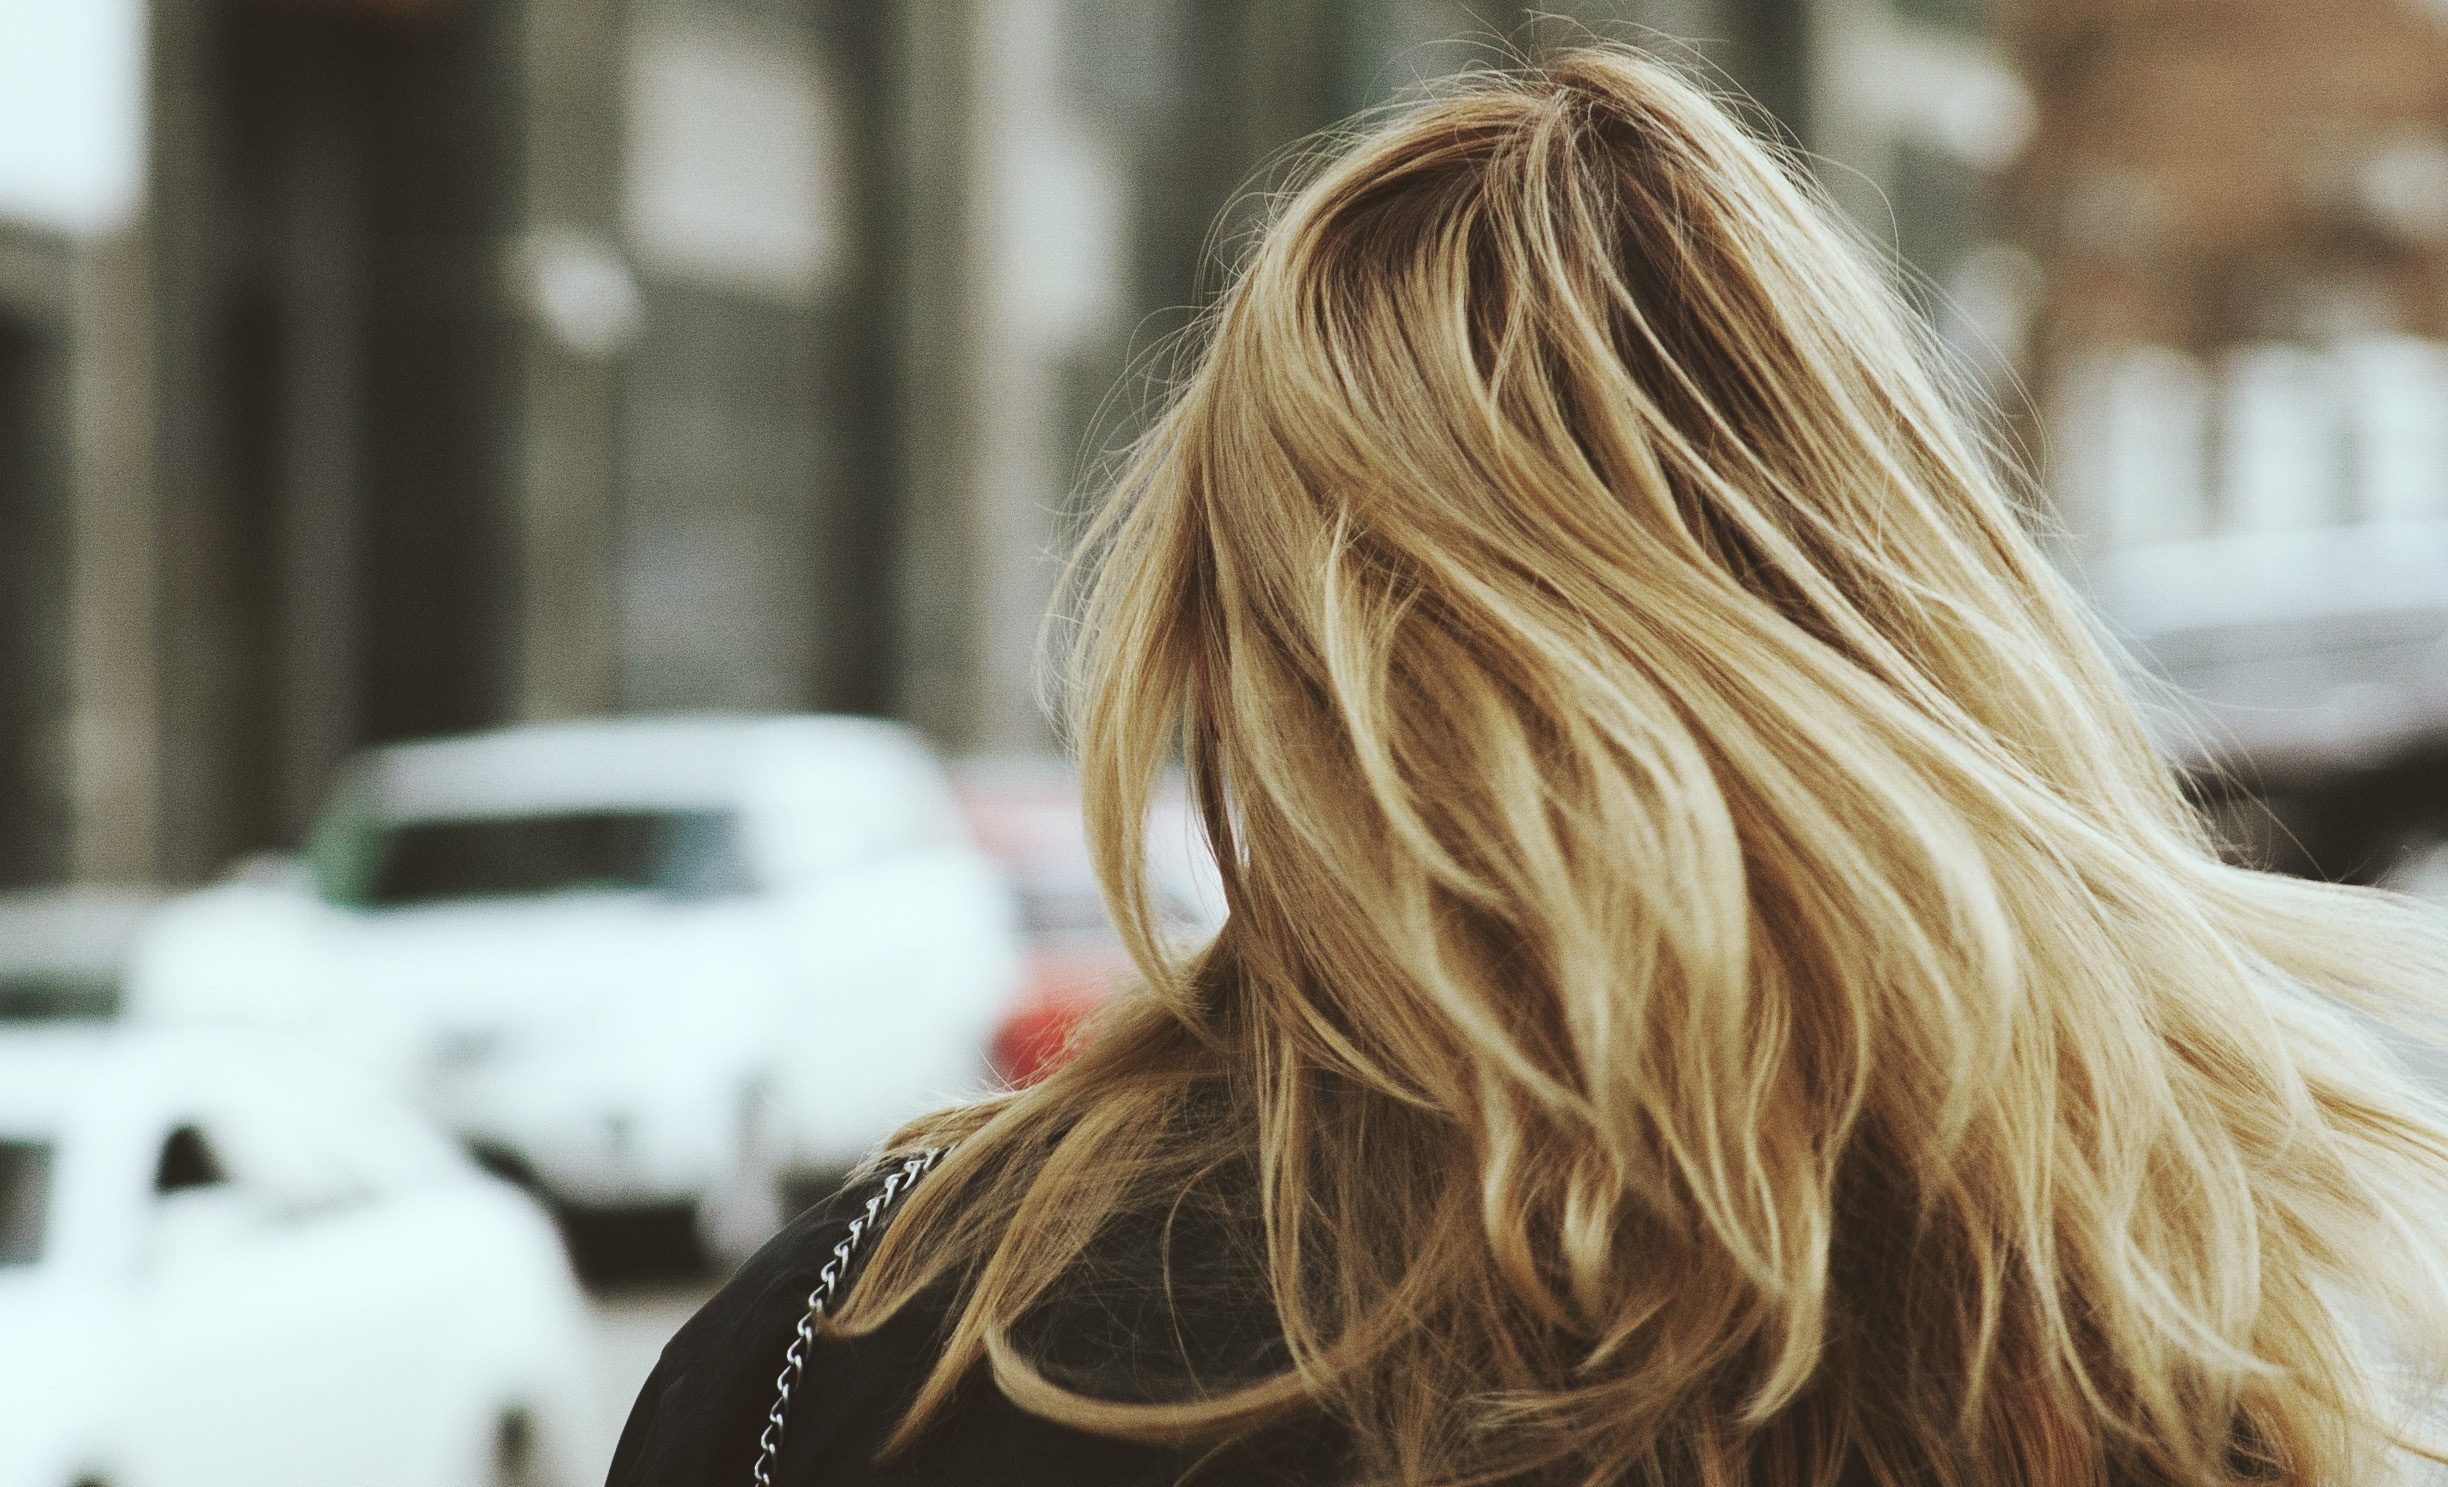 girl-woman-hair-blonde-city